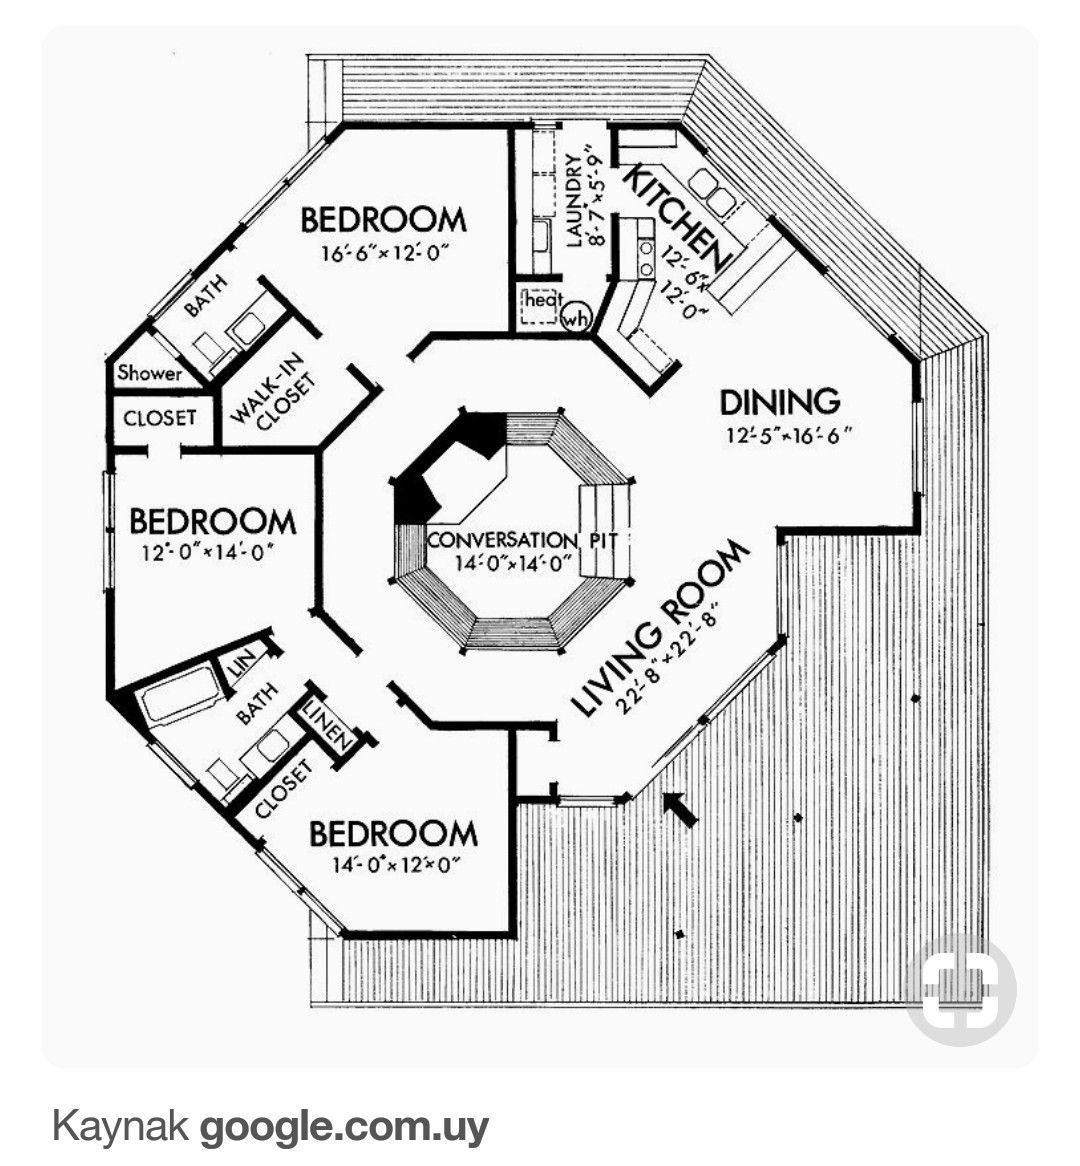 Pin By Oleg On Mimari Proje Fotograf Detay Square House Plans Round House Plans Octagon House